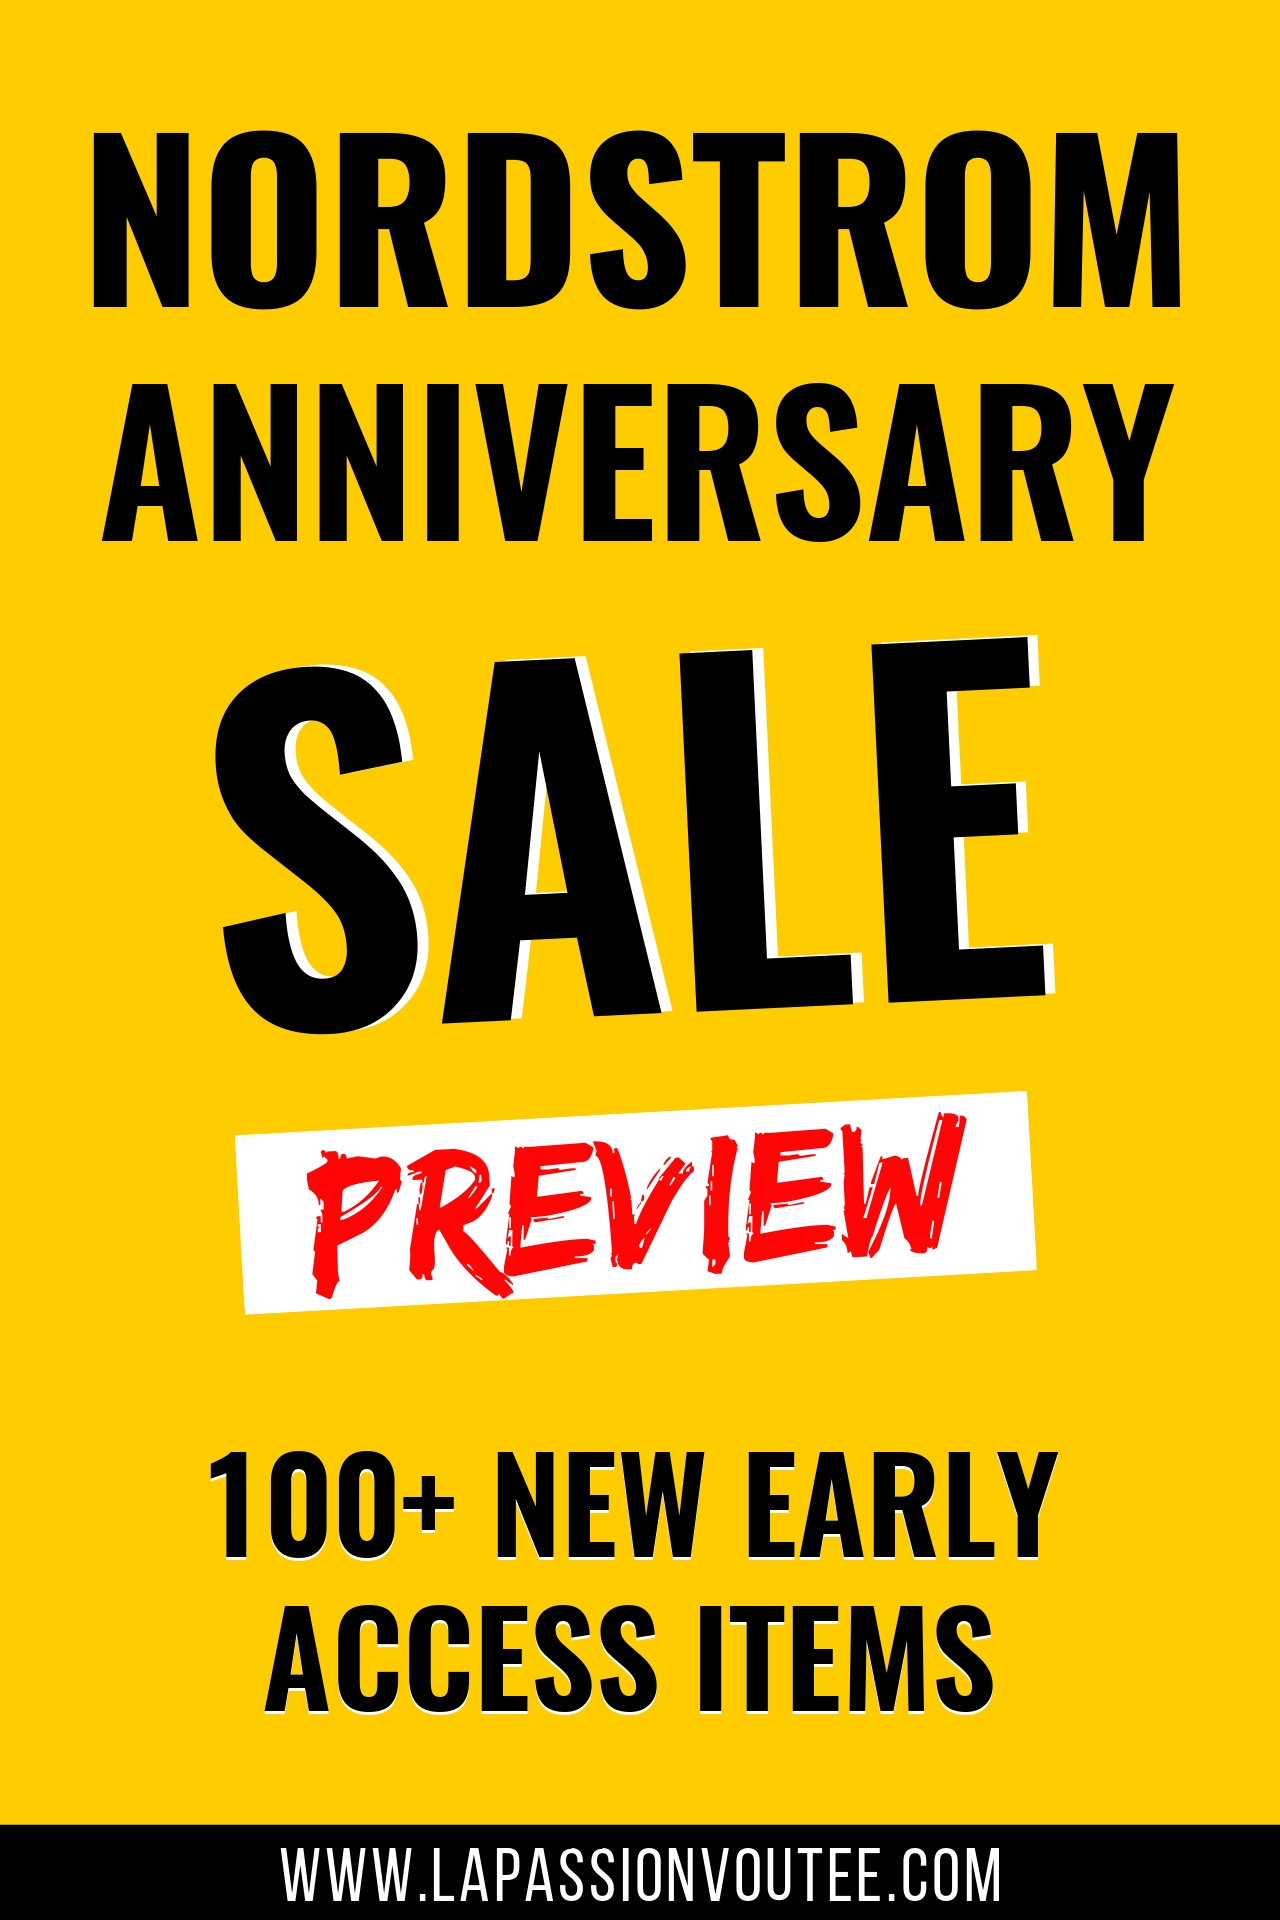 100+ NEW Early Access Nordstrom Anniversary Sale 2019 Preview Items